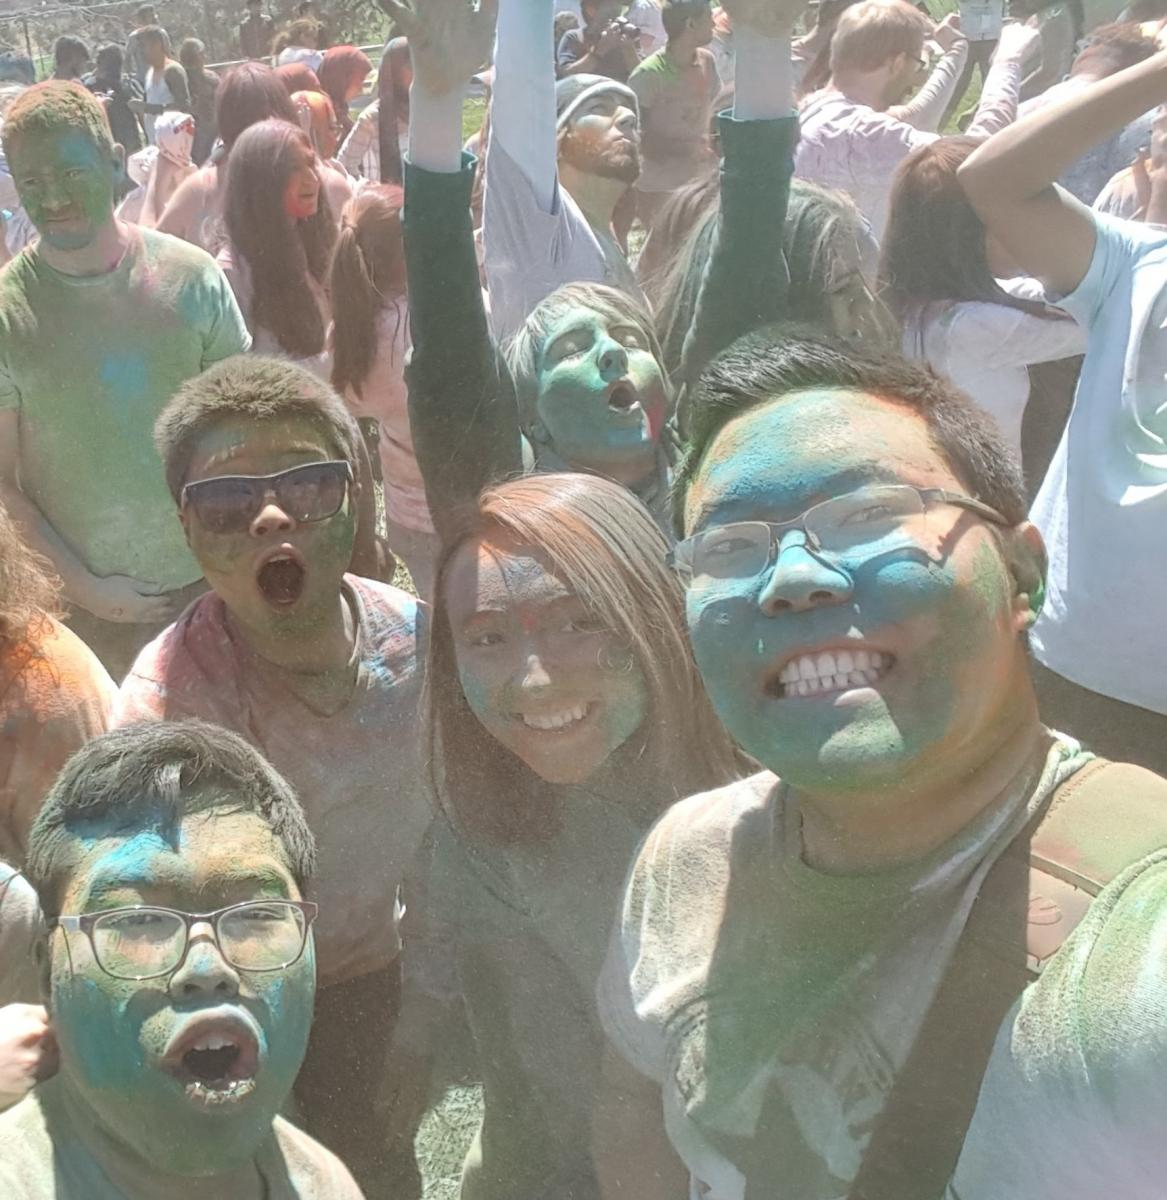 Chris participating in the Holi celebrations at UNL